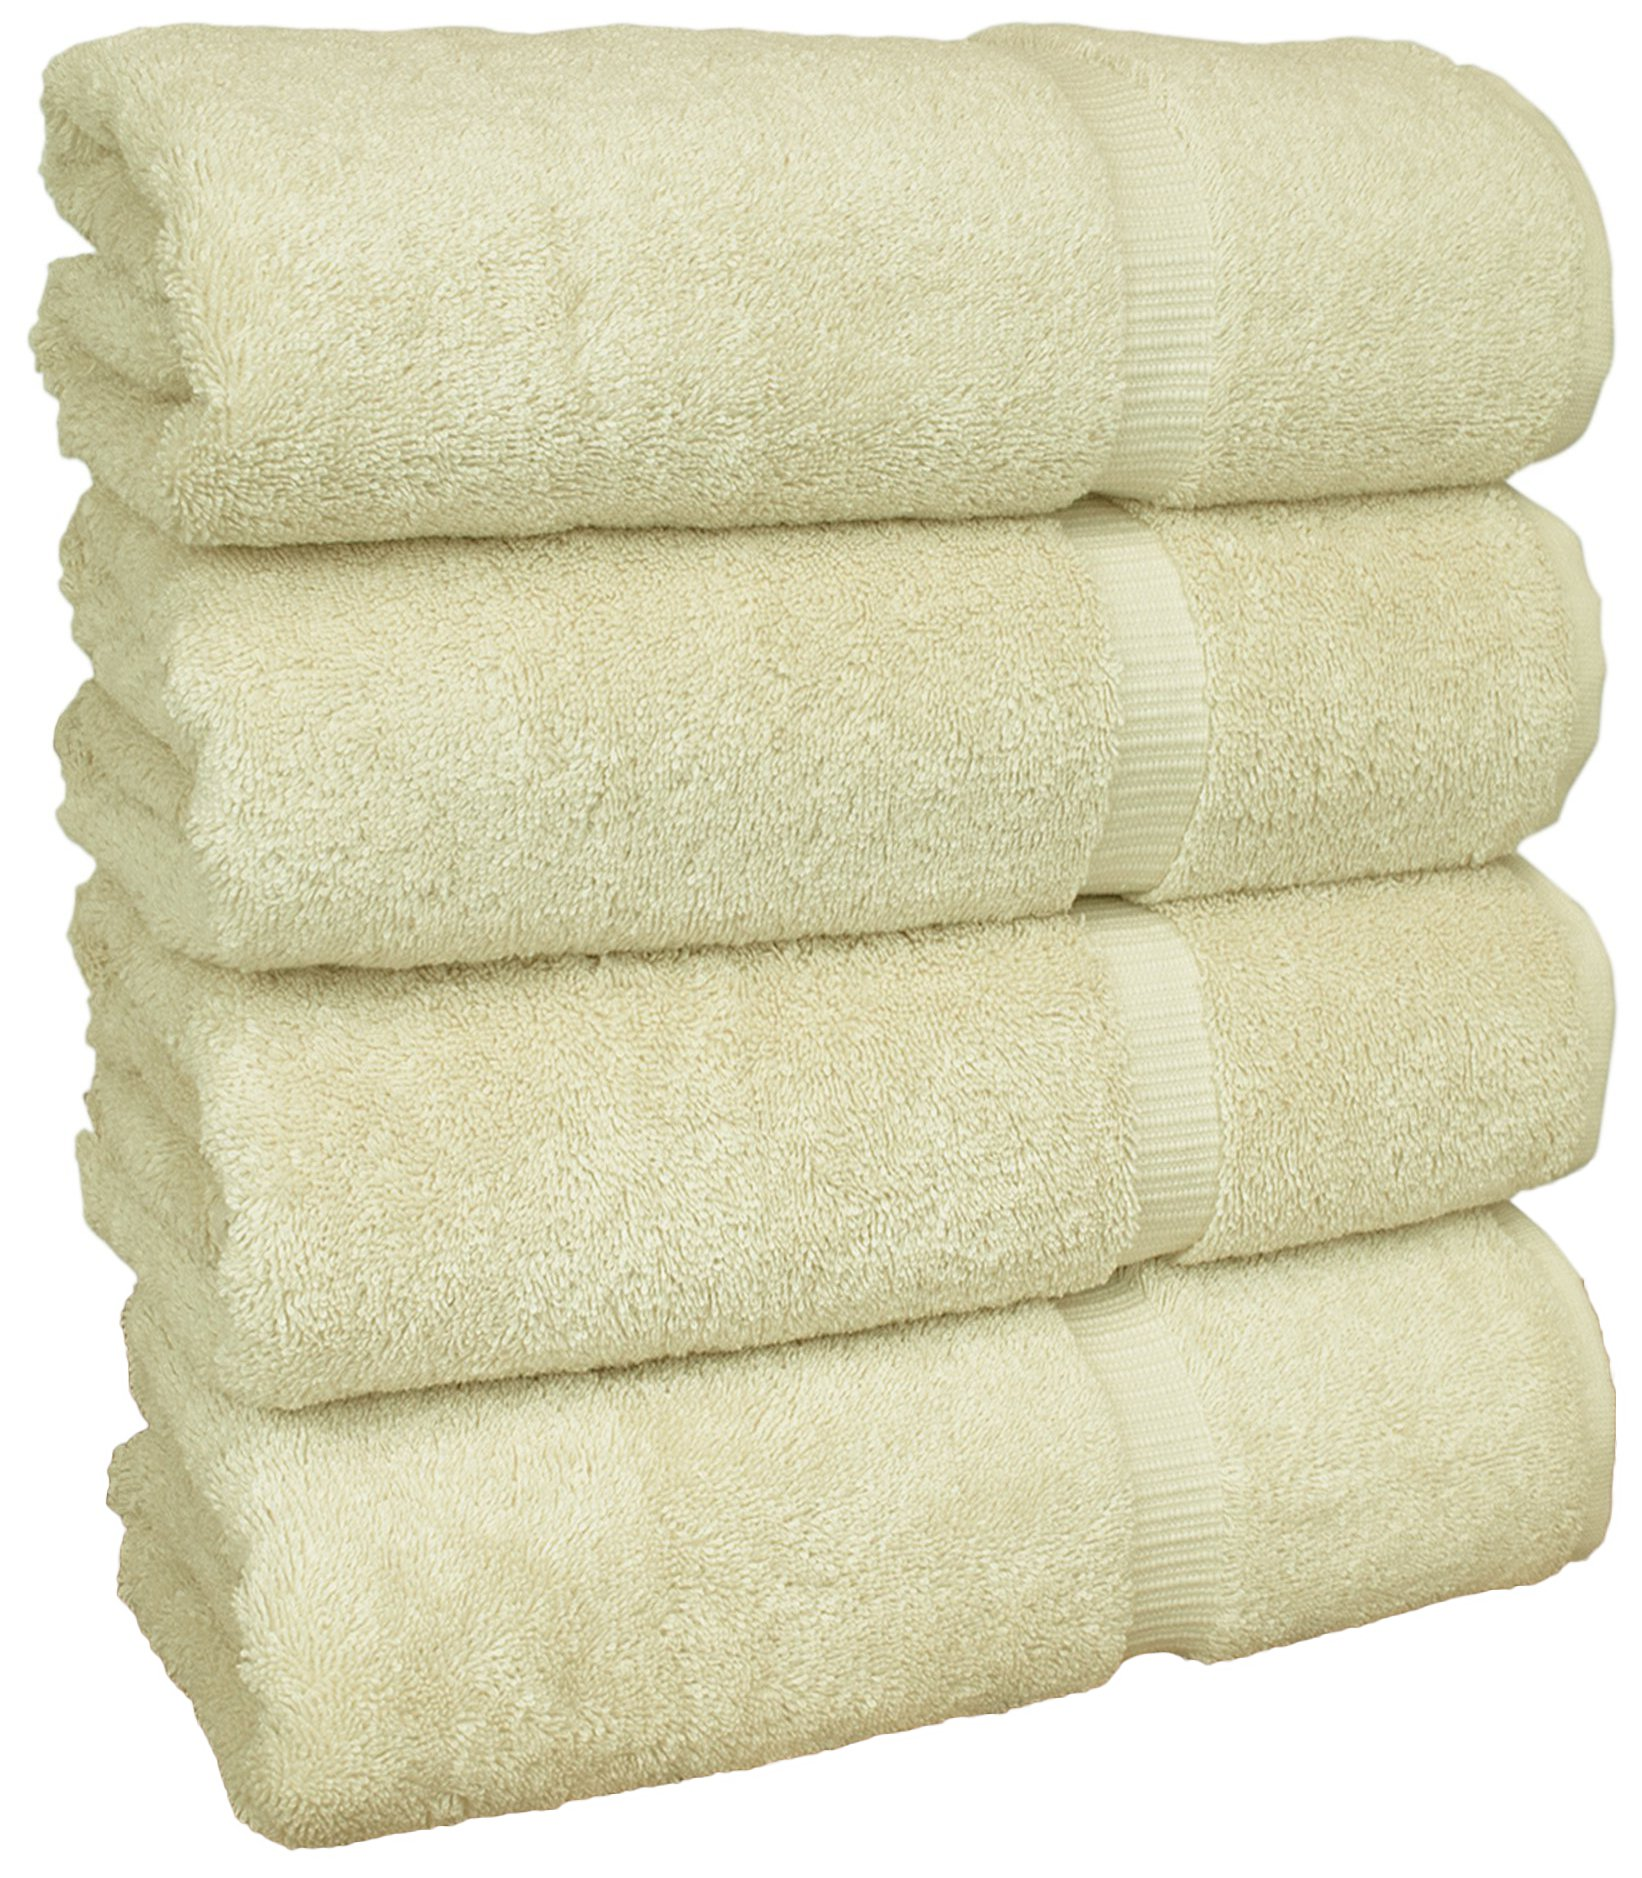 Chakir Turkish Linens Turkish Cotton Luxury Hotel & Spa Bath Towel, Bath Towel - Set of 4, Cream